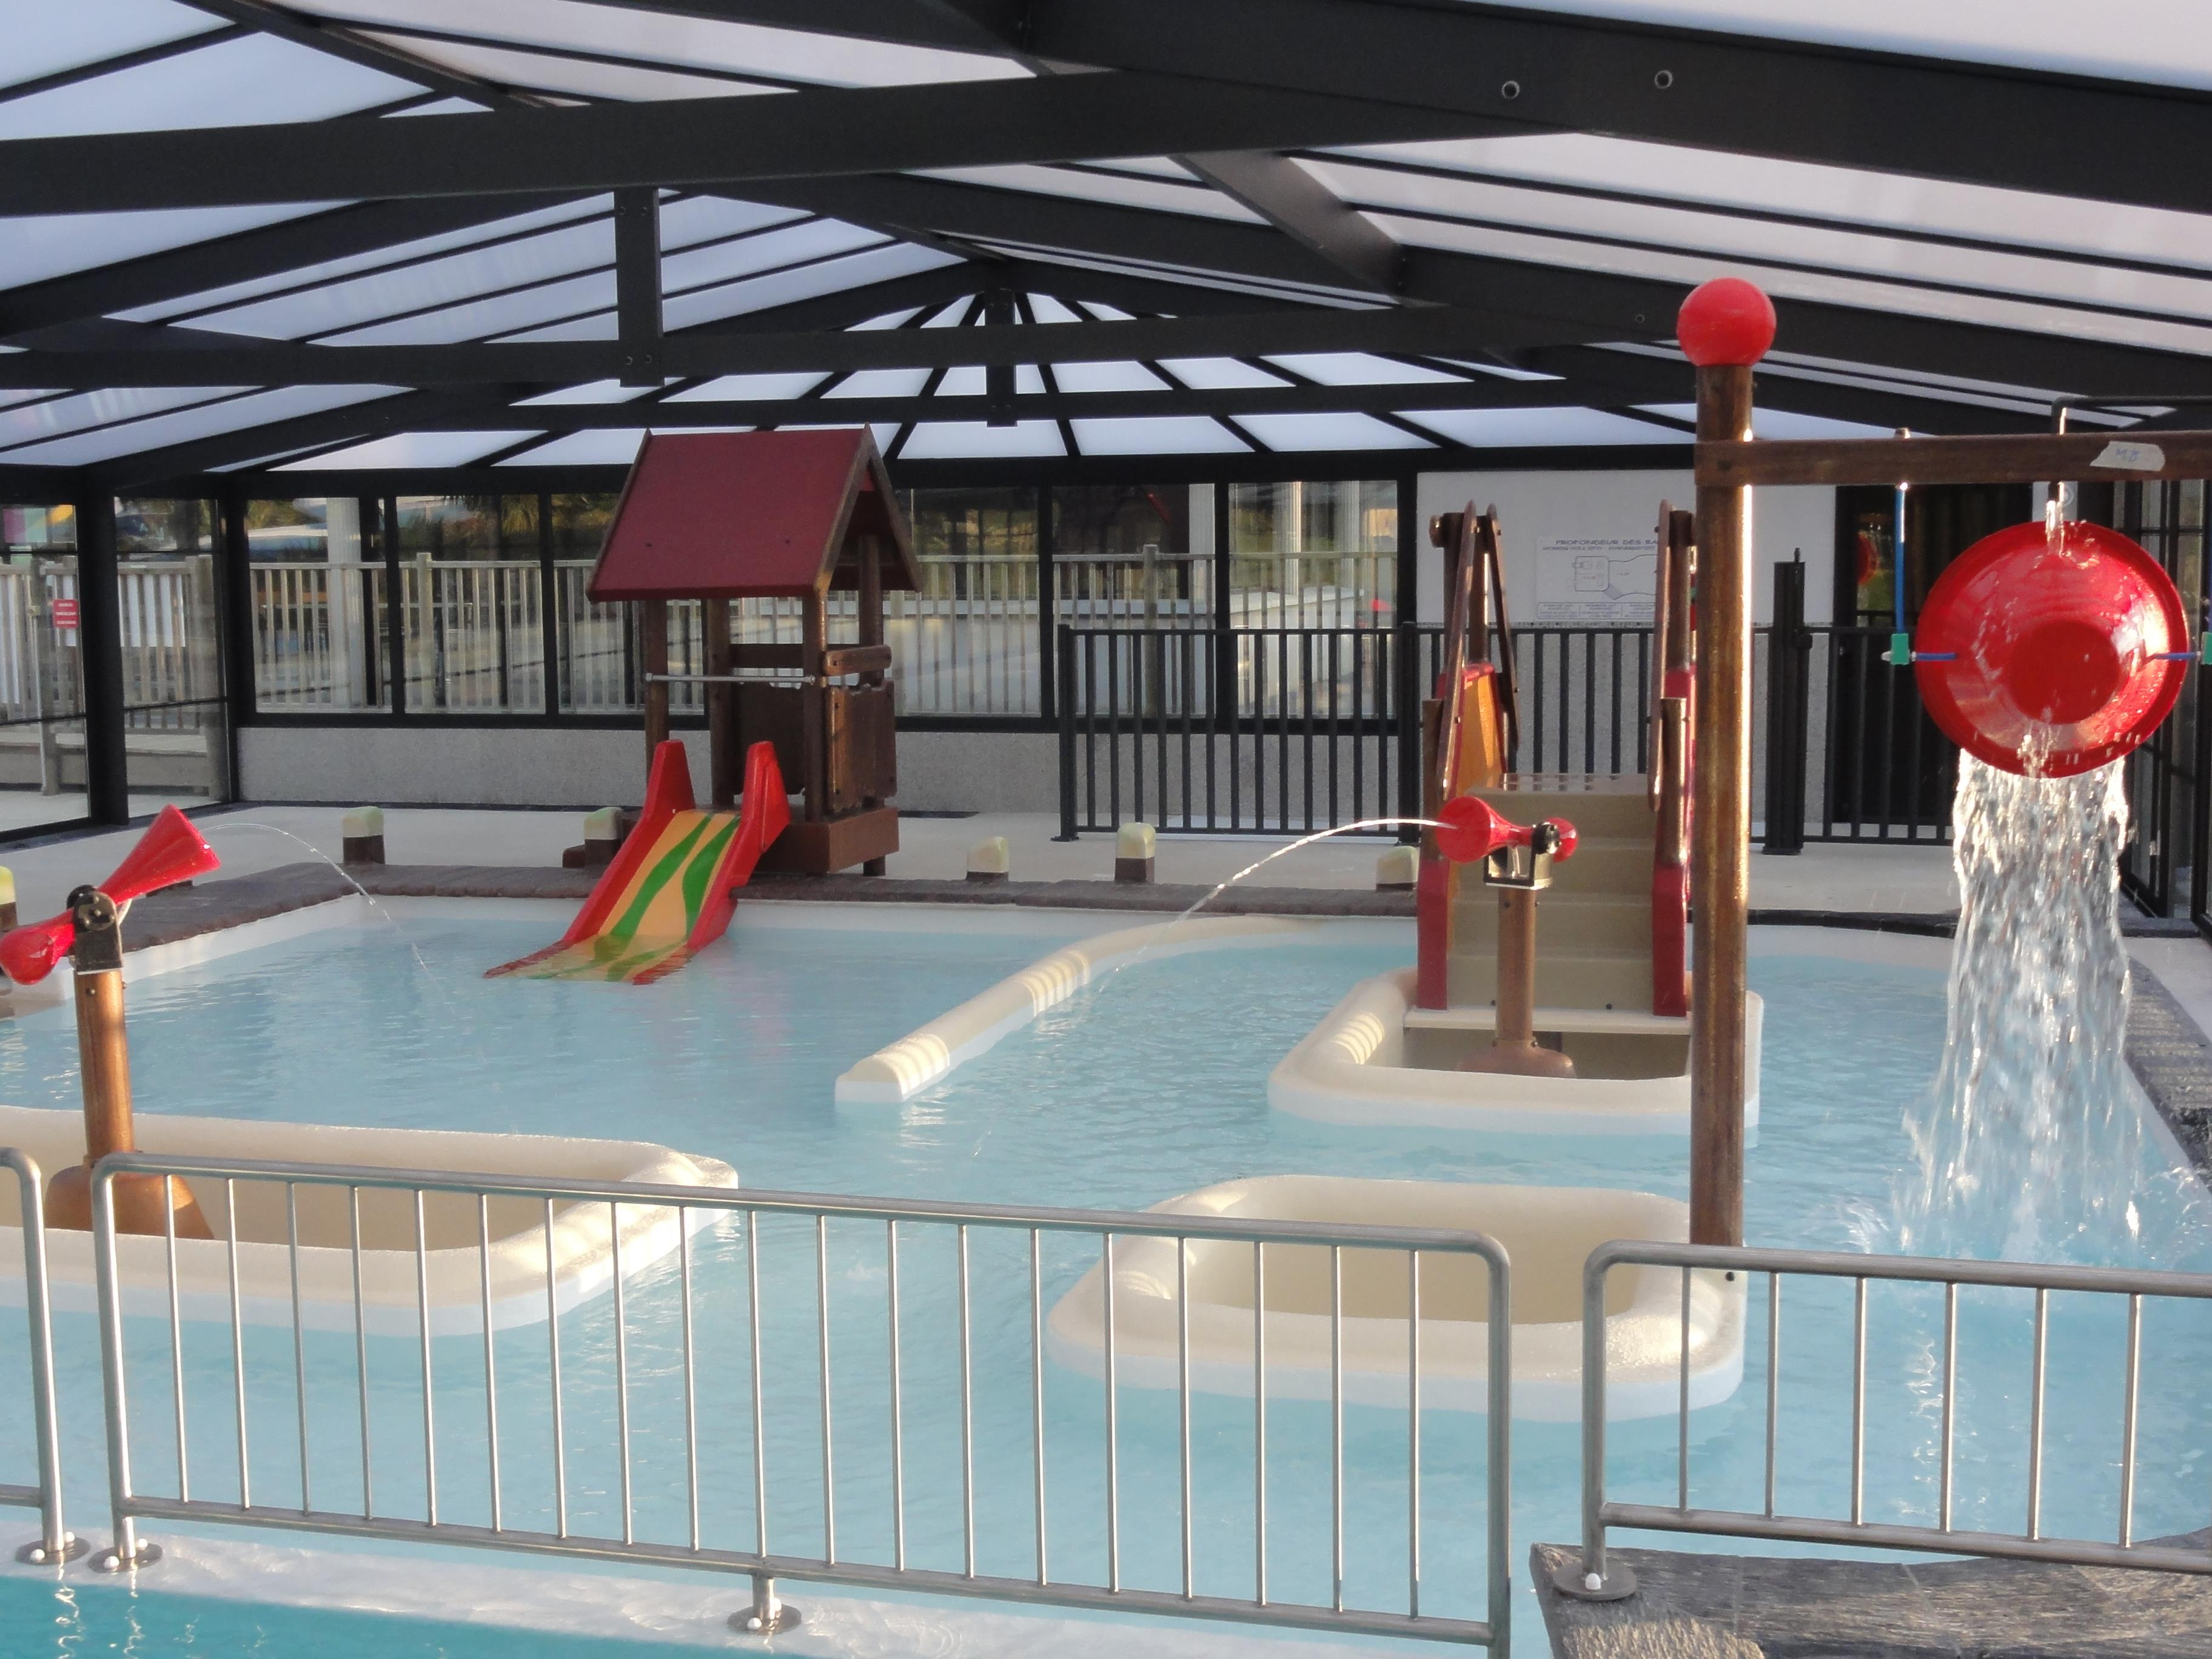 Camping du haras camping kersimon 56250 monterblanc for Piscine vannes horaires